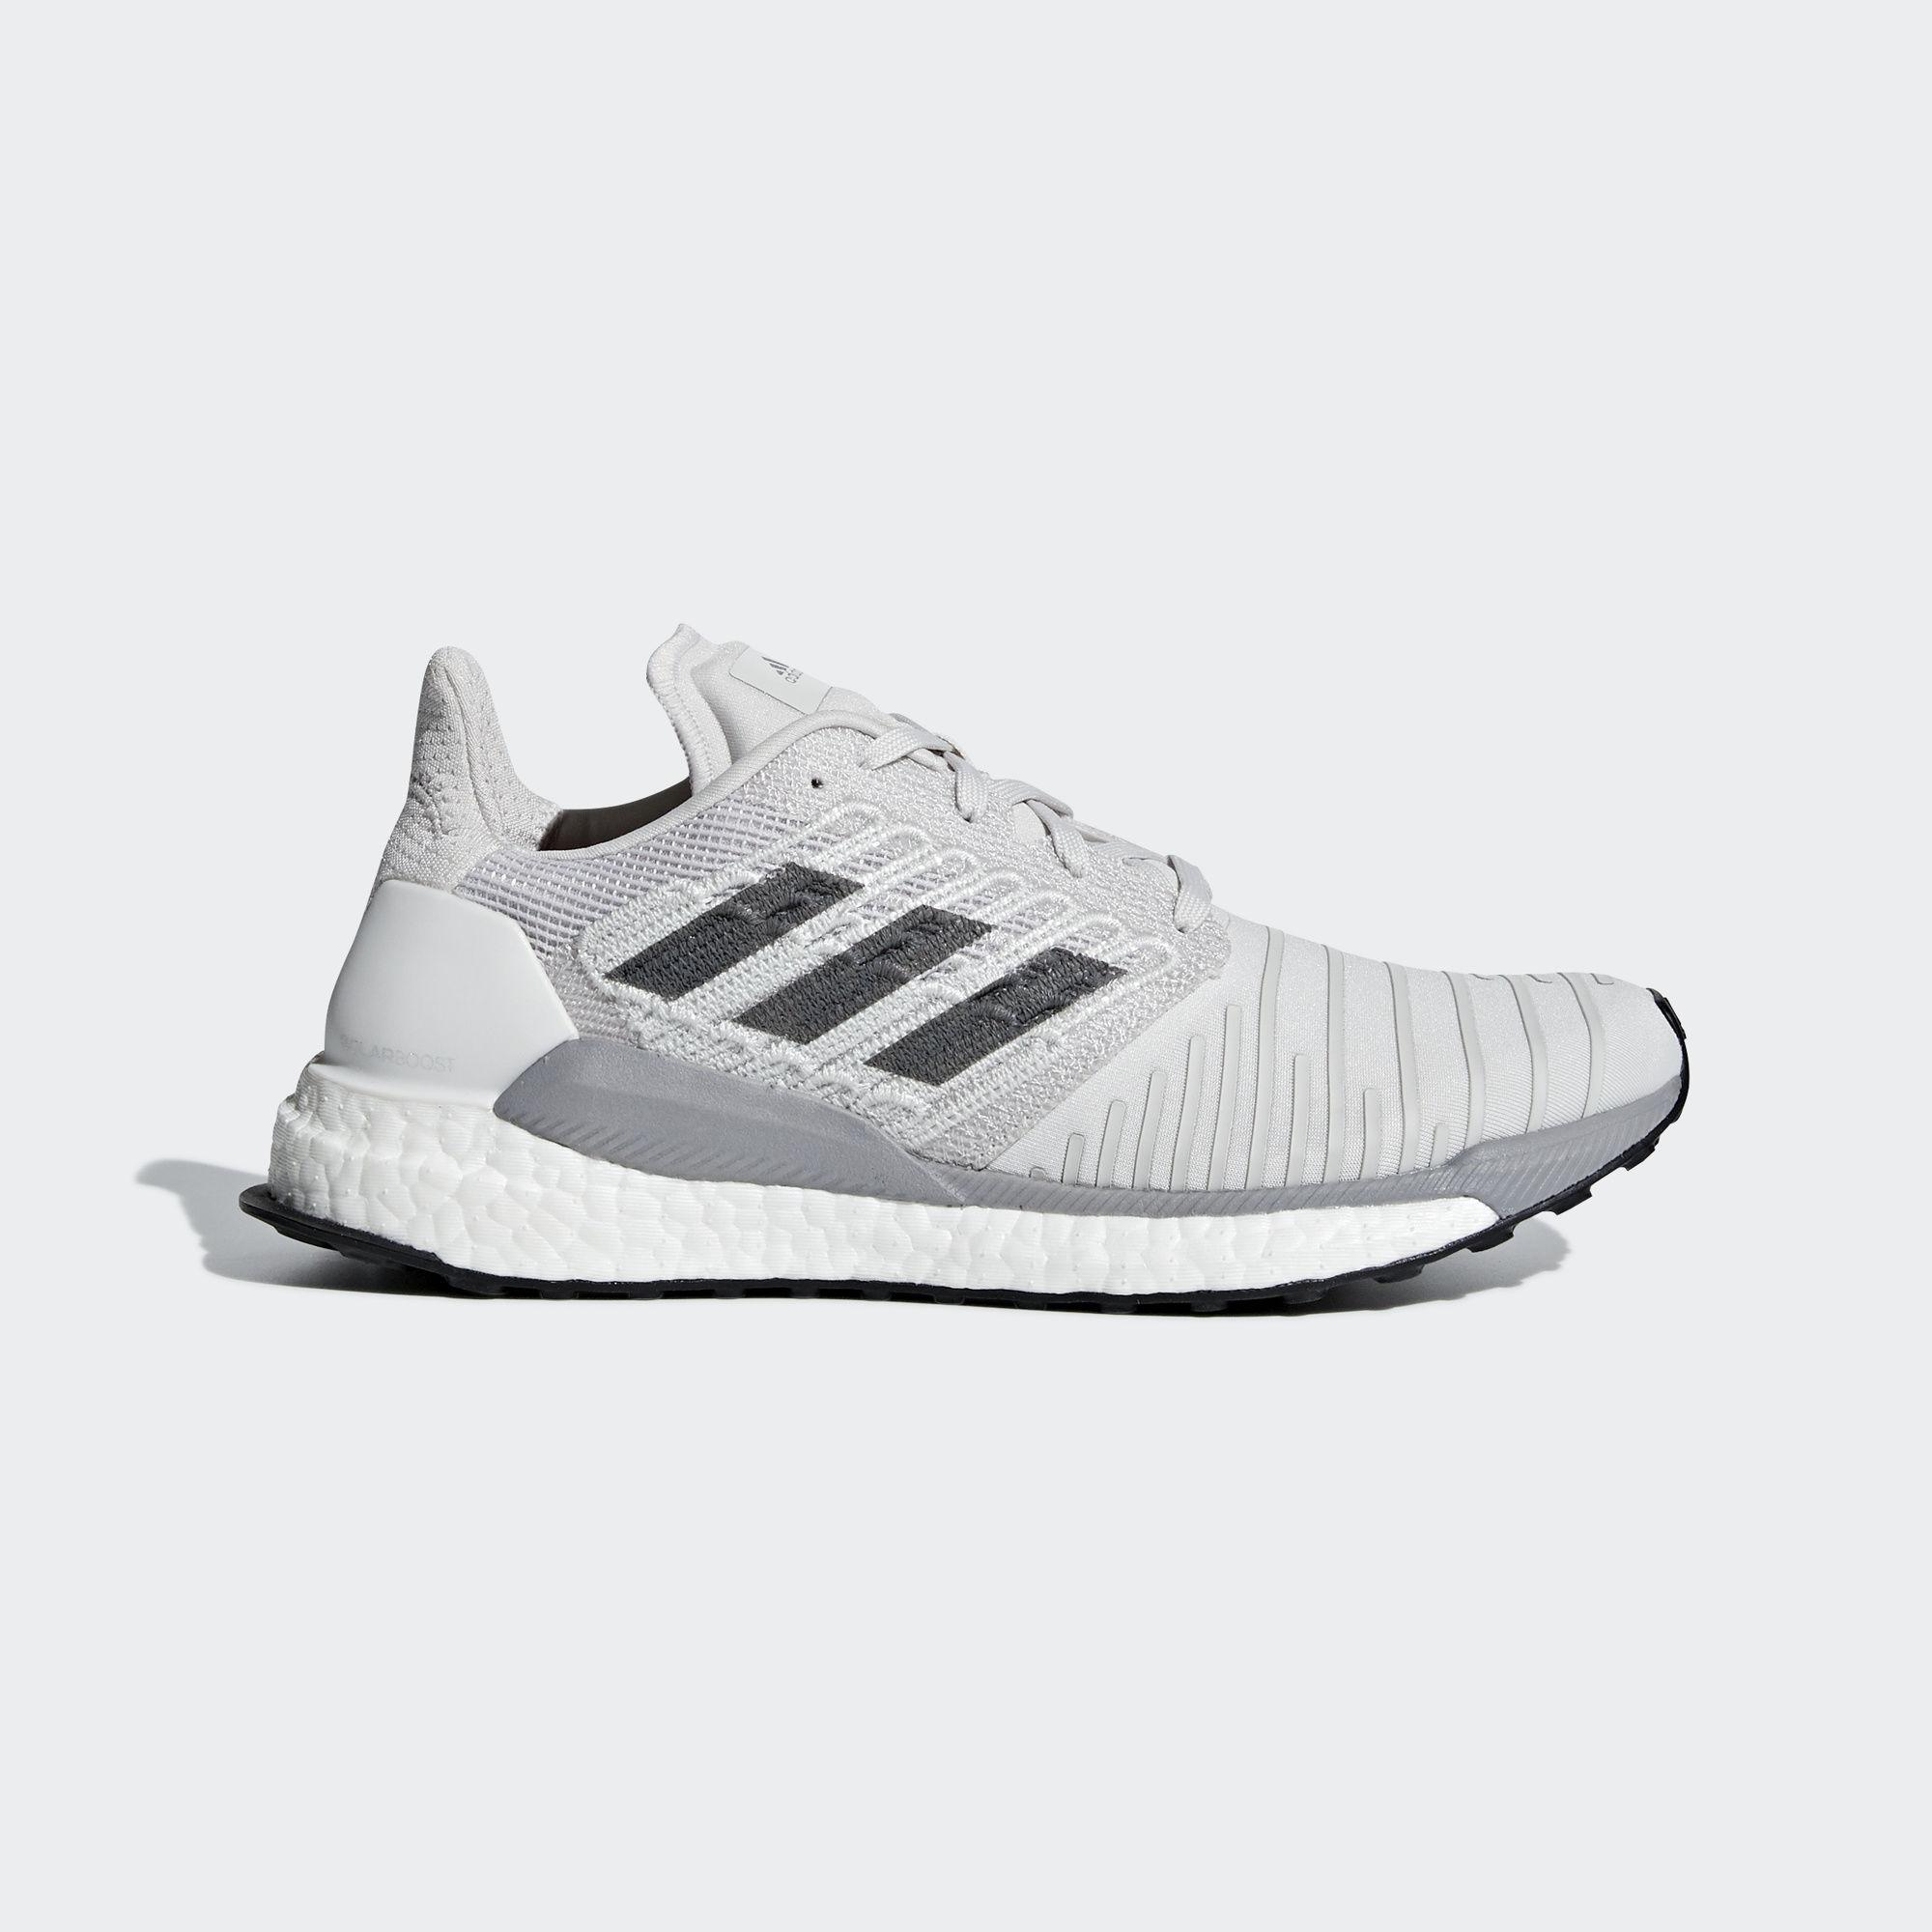 buy online 0d7d0 f6d2c adidas Solar Boost Shoes in Gray - Lyst